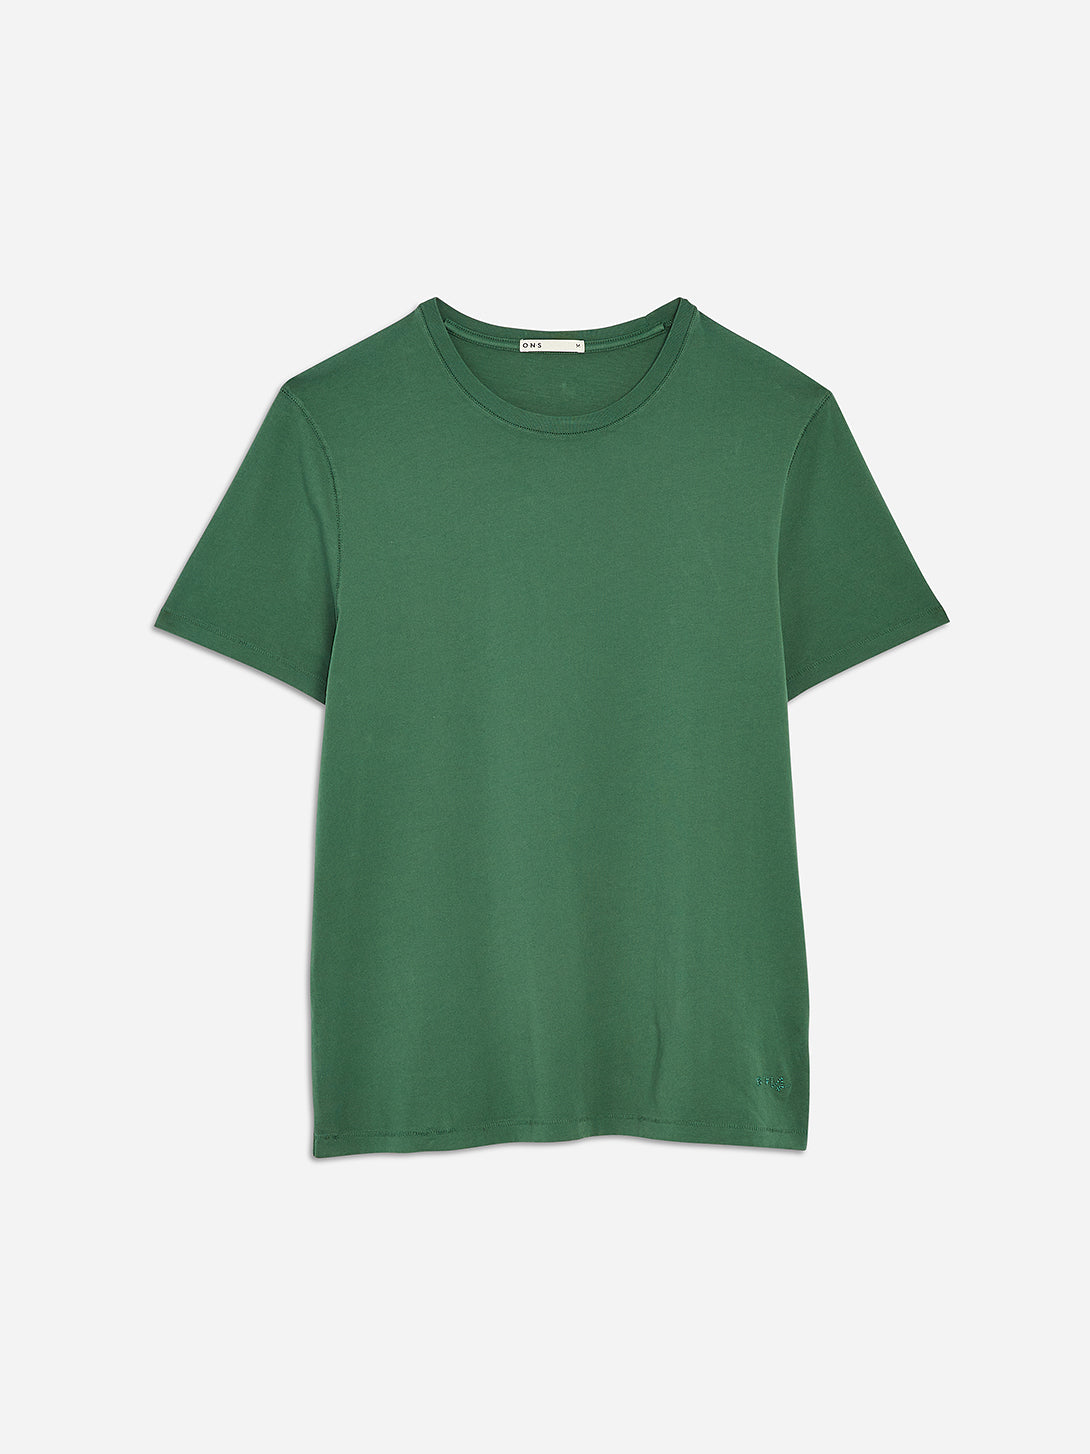 Green Pastures Village Crew Neck Tee Men's supima cotton tees ONS Clothing